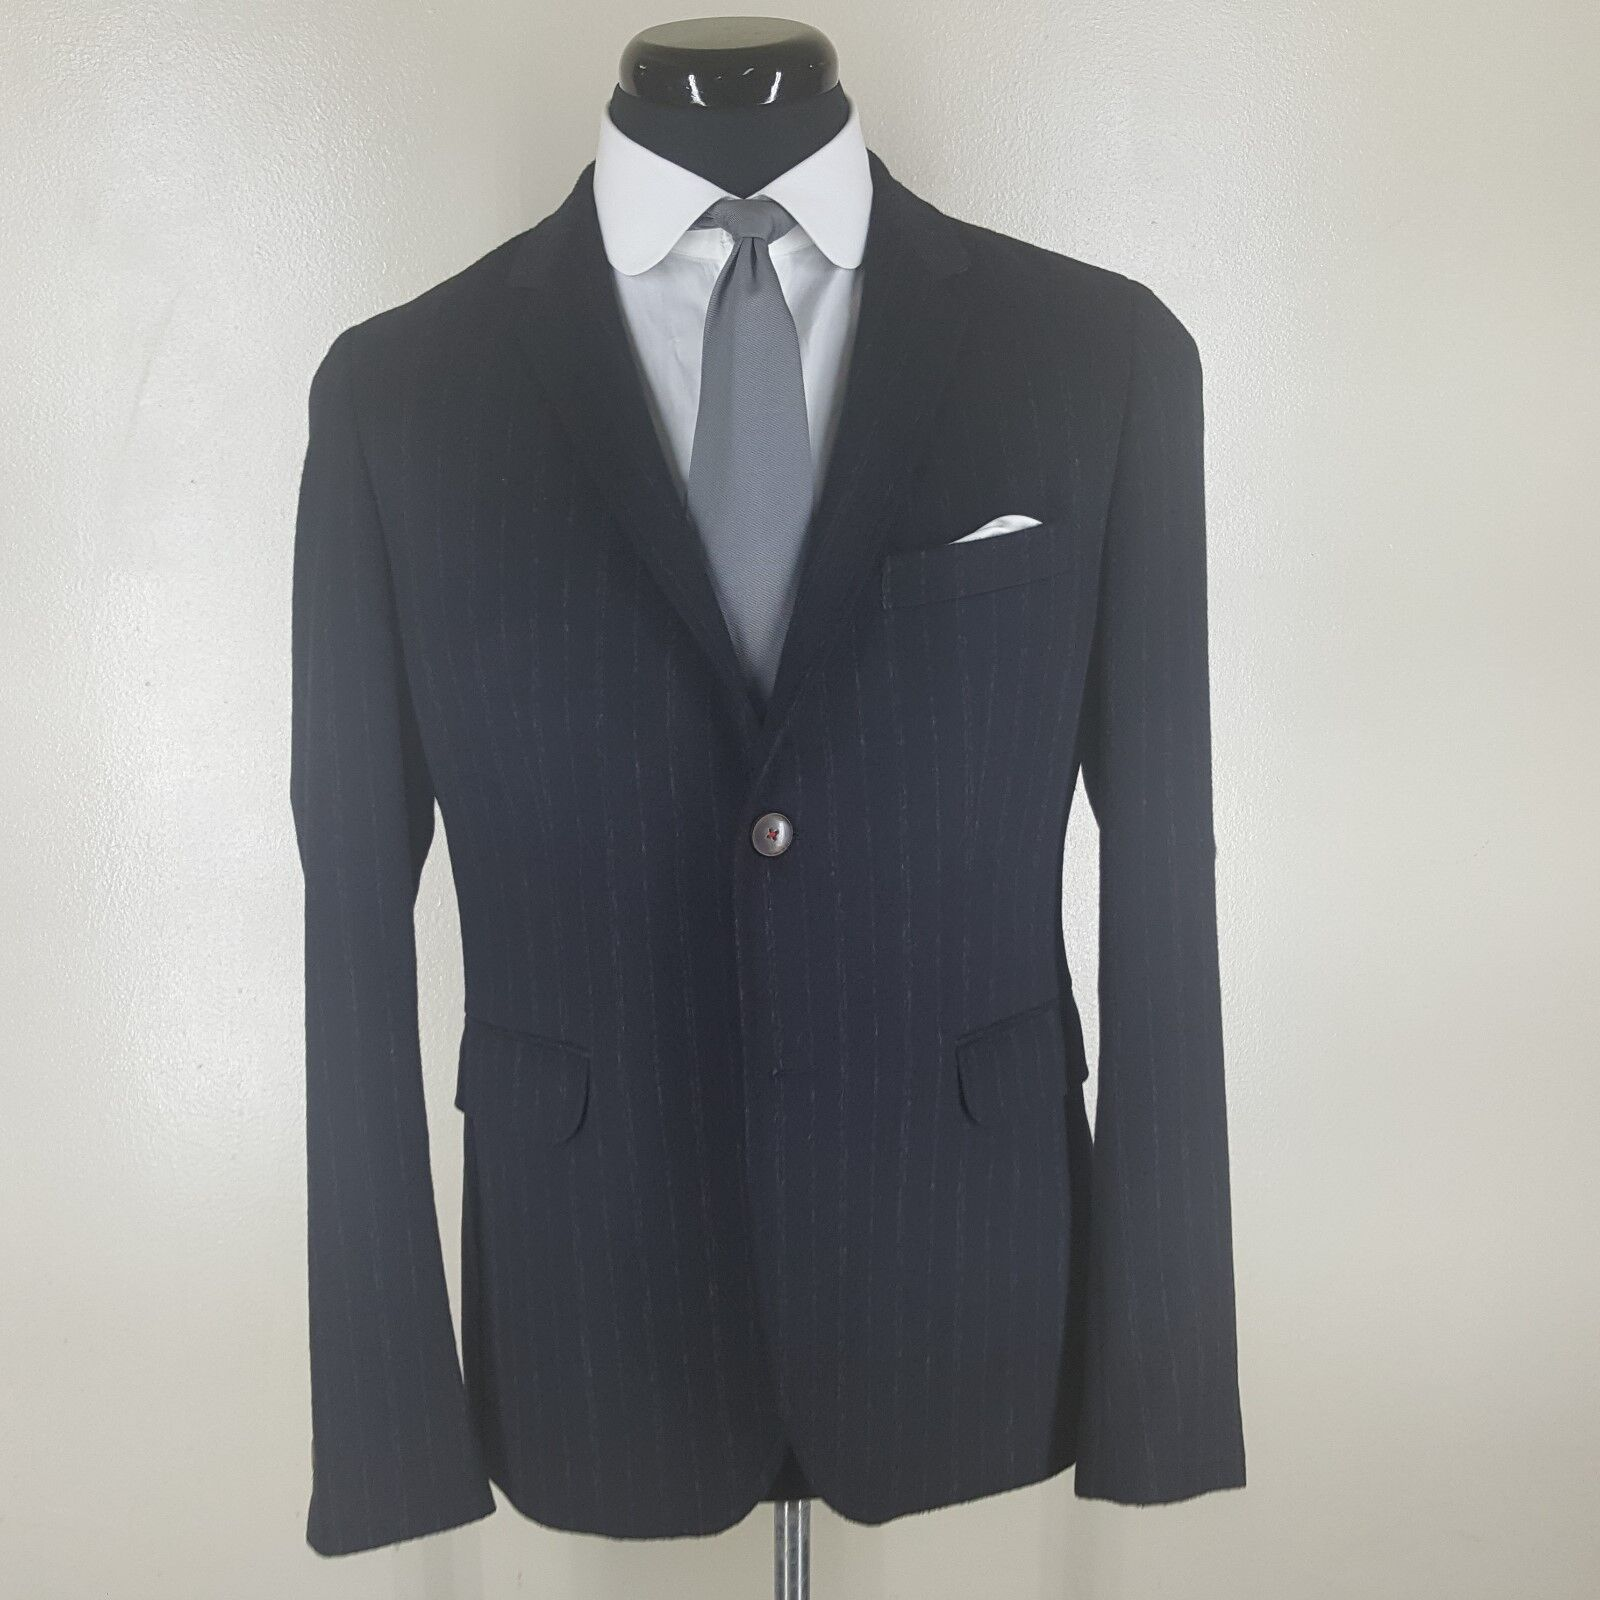 ARMAND BASI Recent  bluee Striped Sport Coat 2 Btn Side vents 40 R-Short Style